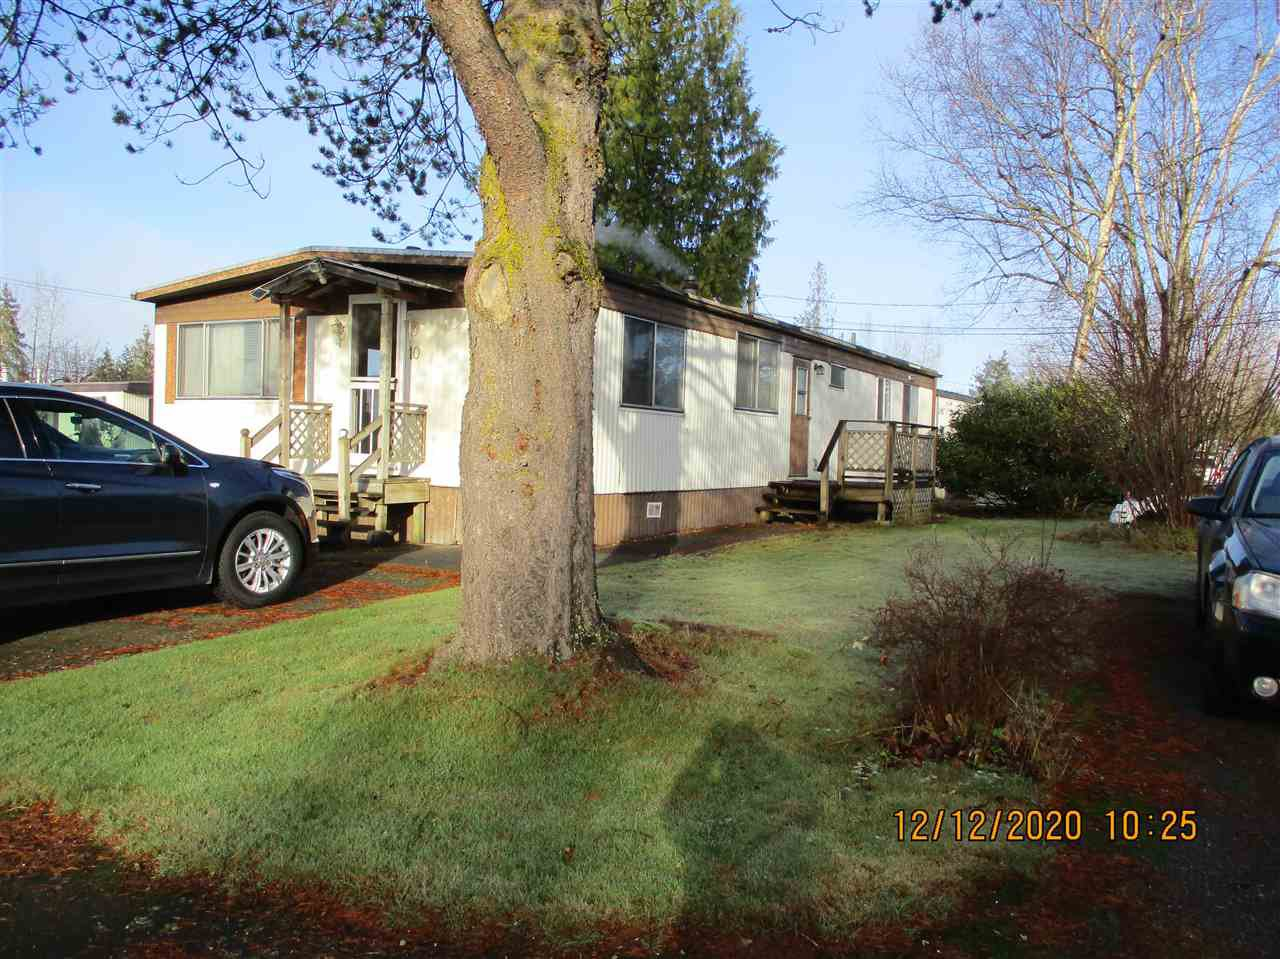 """Main Photo: 10 23141 72 Avenue in Langley: Salmon River Manufactured Home for sale in """"LIVINGSTONE PARK"""" : MLS®# R2523897"""